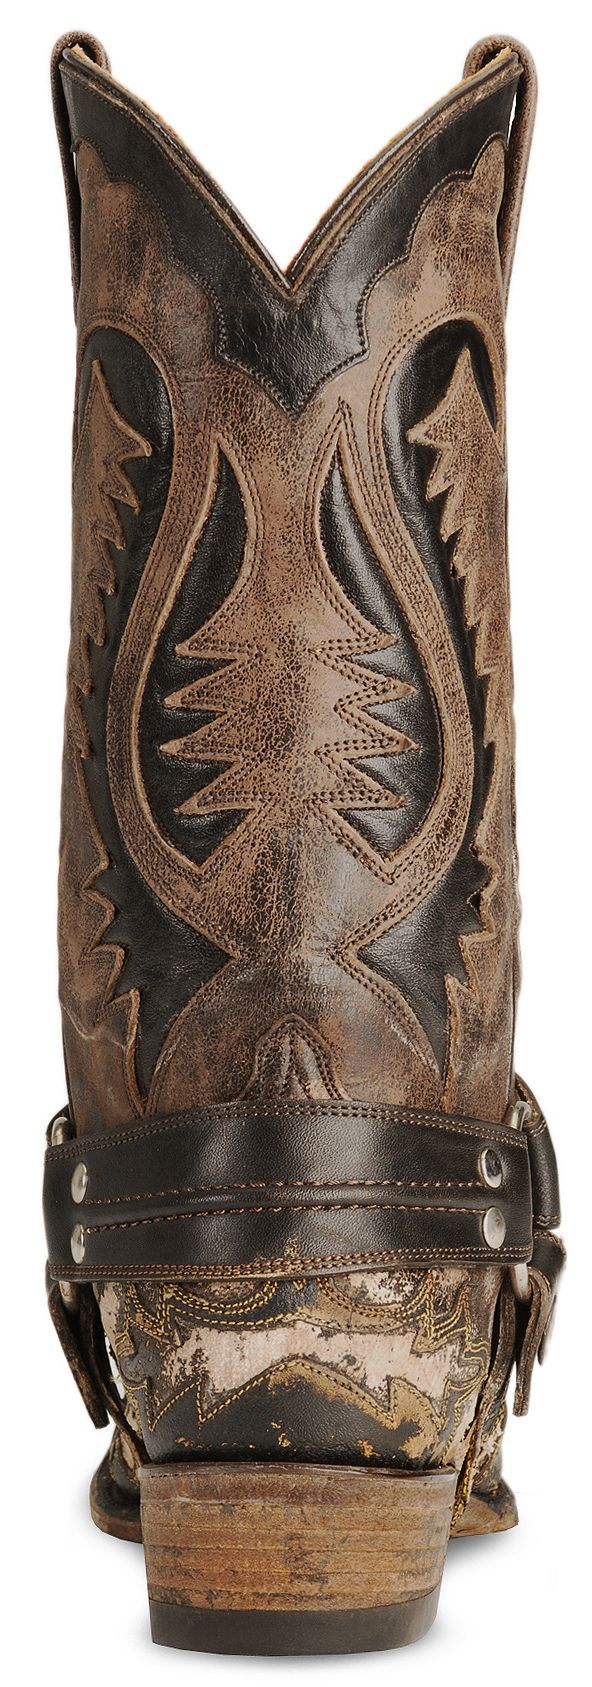 Stetson Brown Harness Cowboy Boots - Snip Toe - Country Outfitter